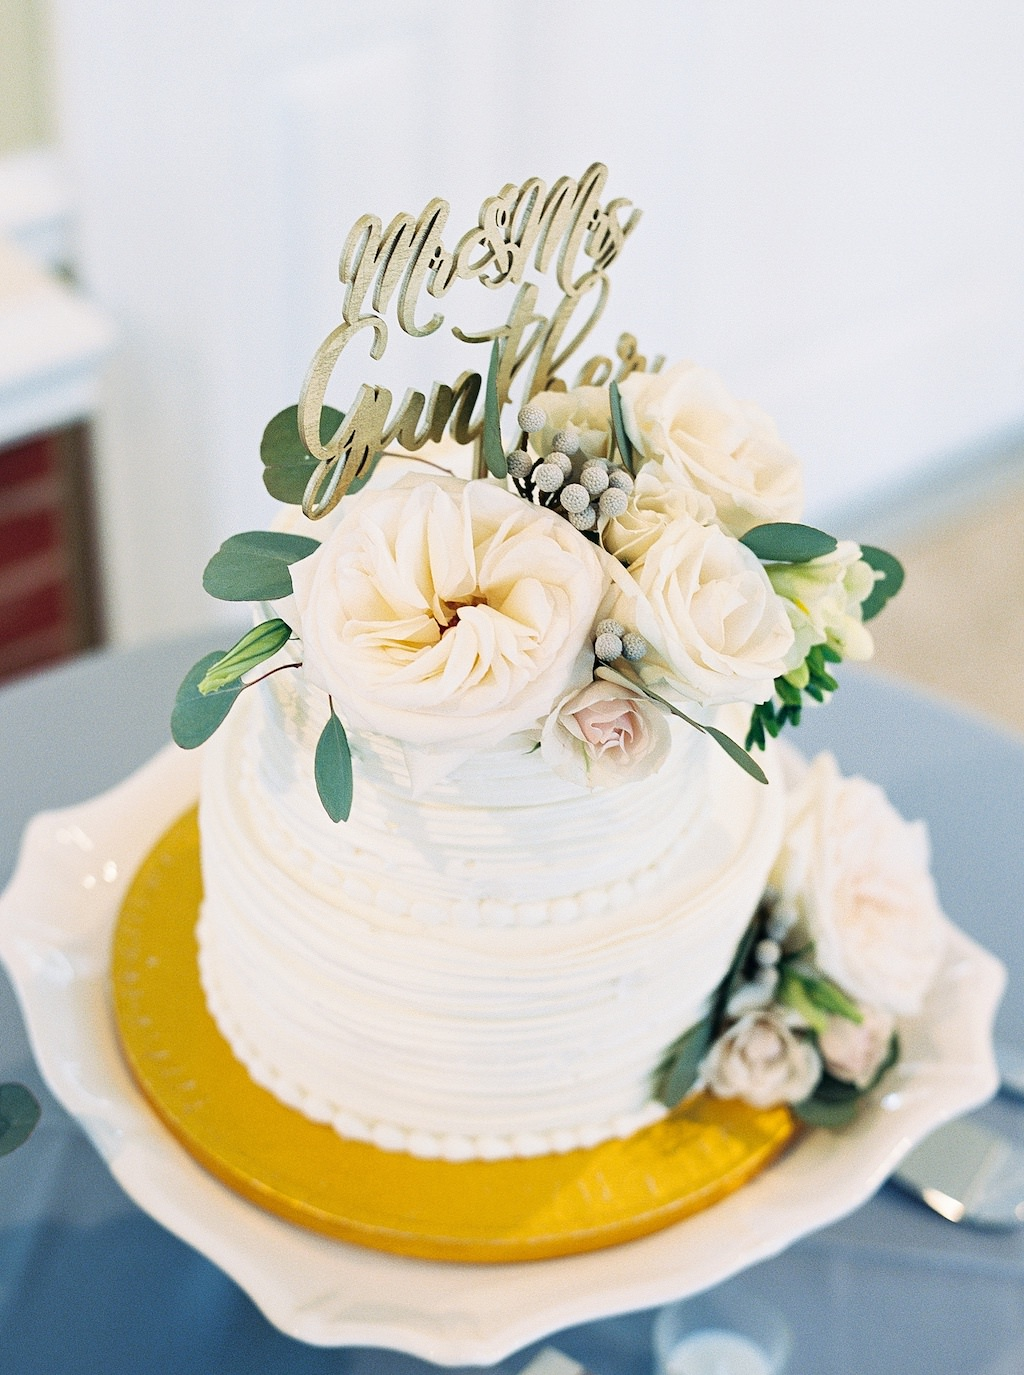 Two Tier White Ruffle and Beaded Wedding Cake with Real Ivory Garden Roses and Silver Dollar Eucalyptus Cake Topper and Gold Laser Cut Custom Cake Topper | Tampa Bay Wedding Florist Cotton & Magnolia